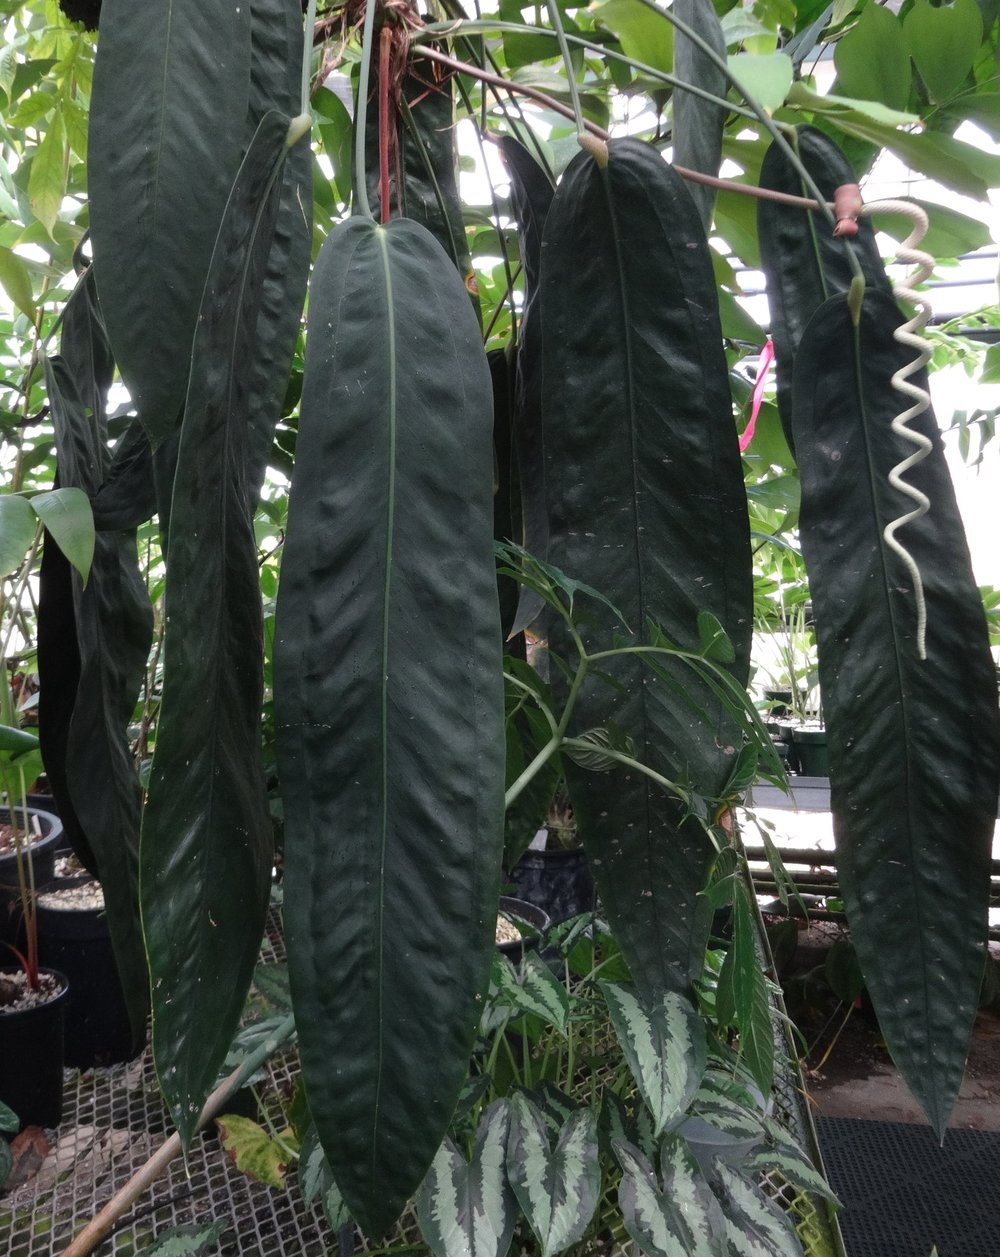 An exceptional example of the very wide, rather short-leaf ecotype from premontane forest on Cerro Tute, Veraguas, Panamá grown by Dylan Hannon at the Huntington Botanical Garden in California.